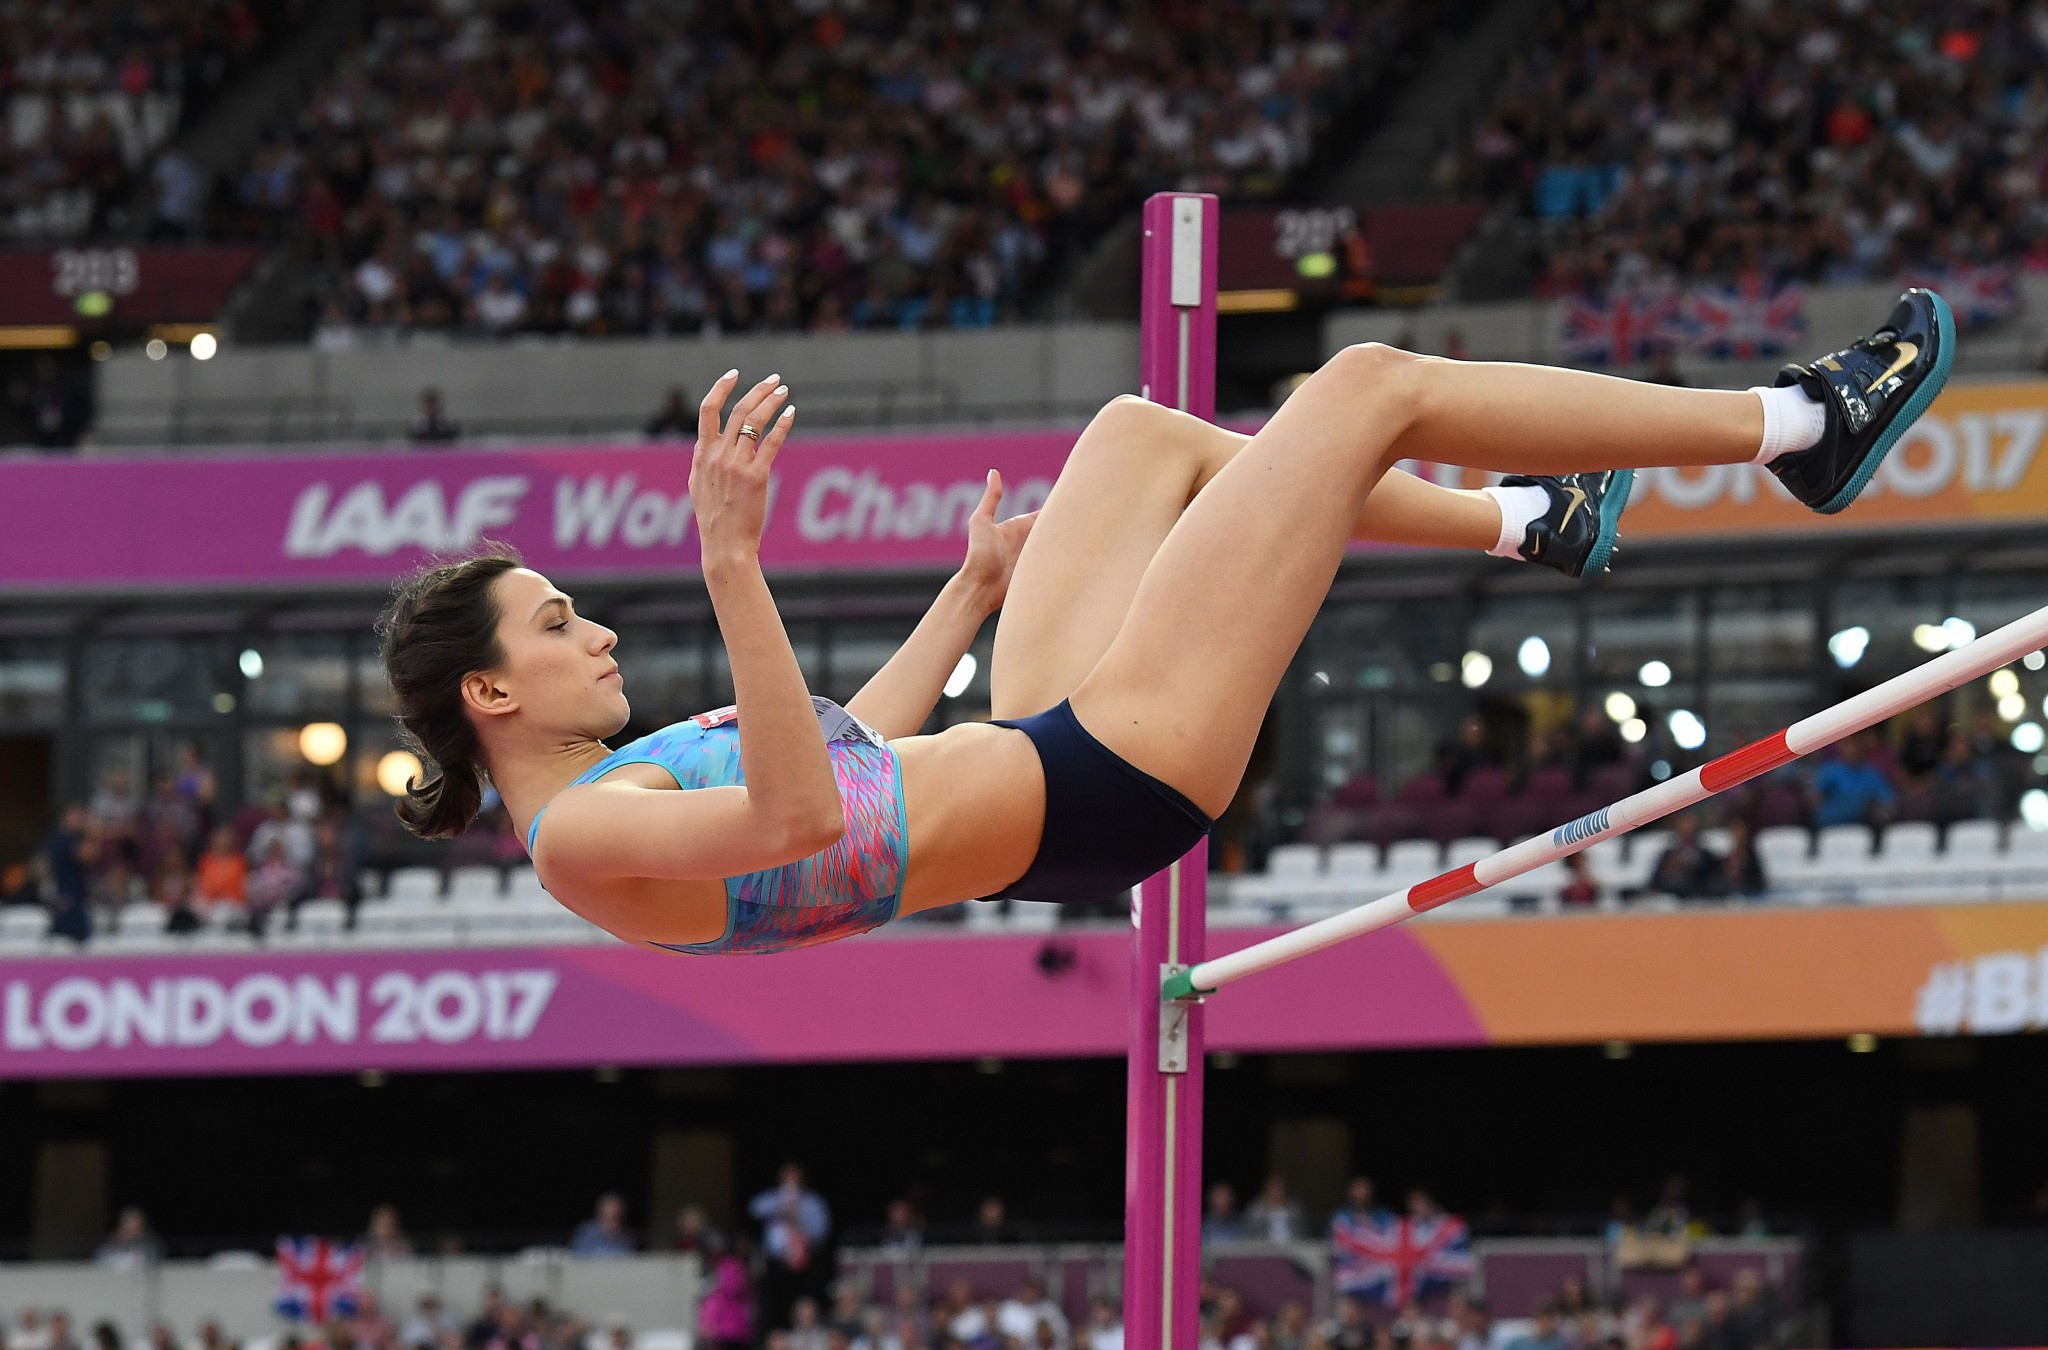 Mariya Lasitskene became the first Russian athlete to win a gold medal at these IAAF World Championships ©Getty Images